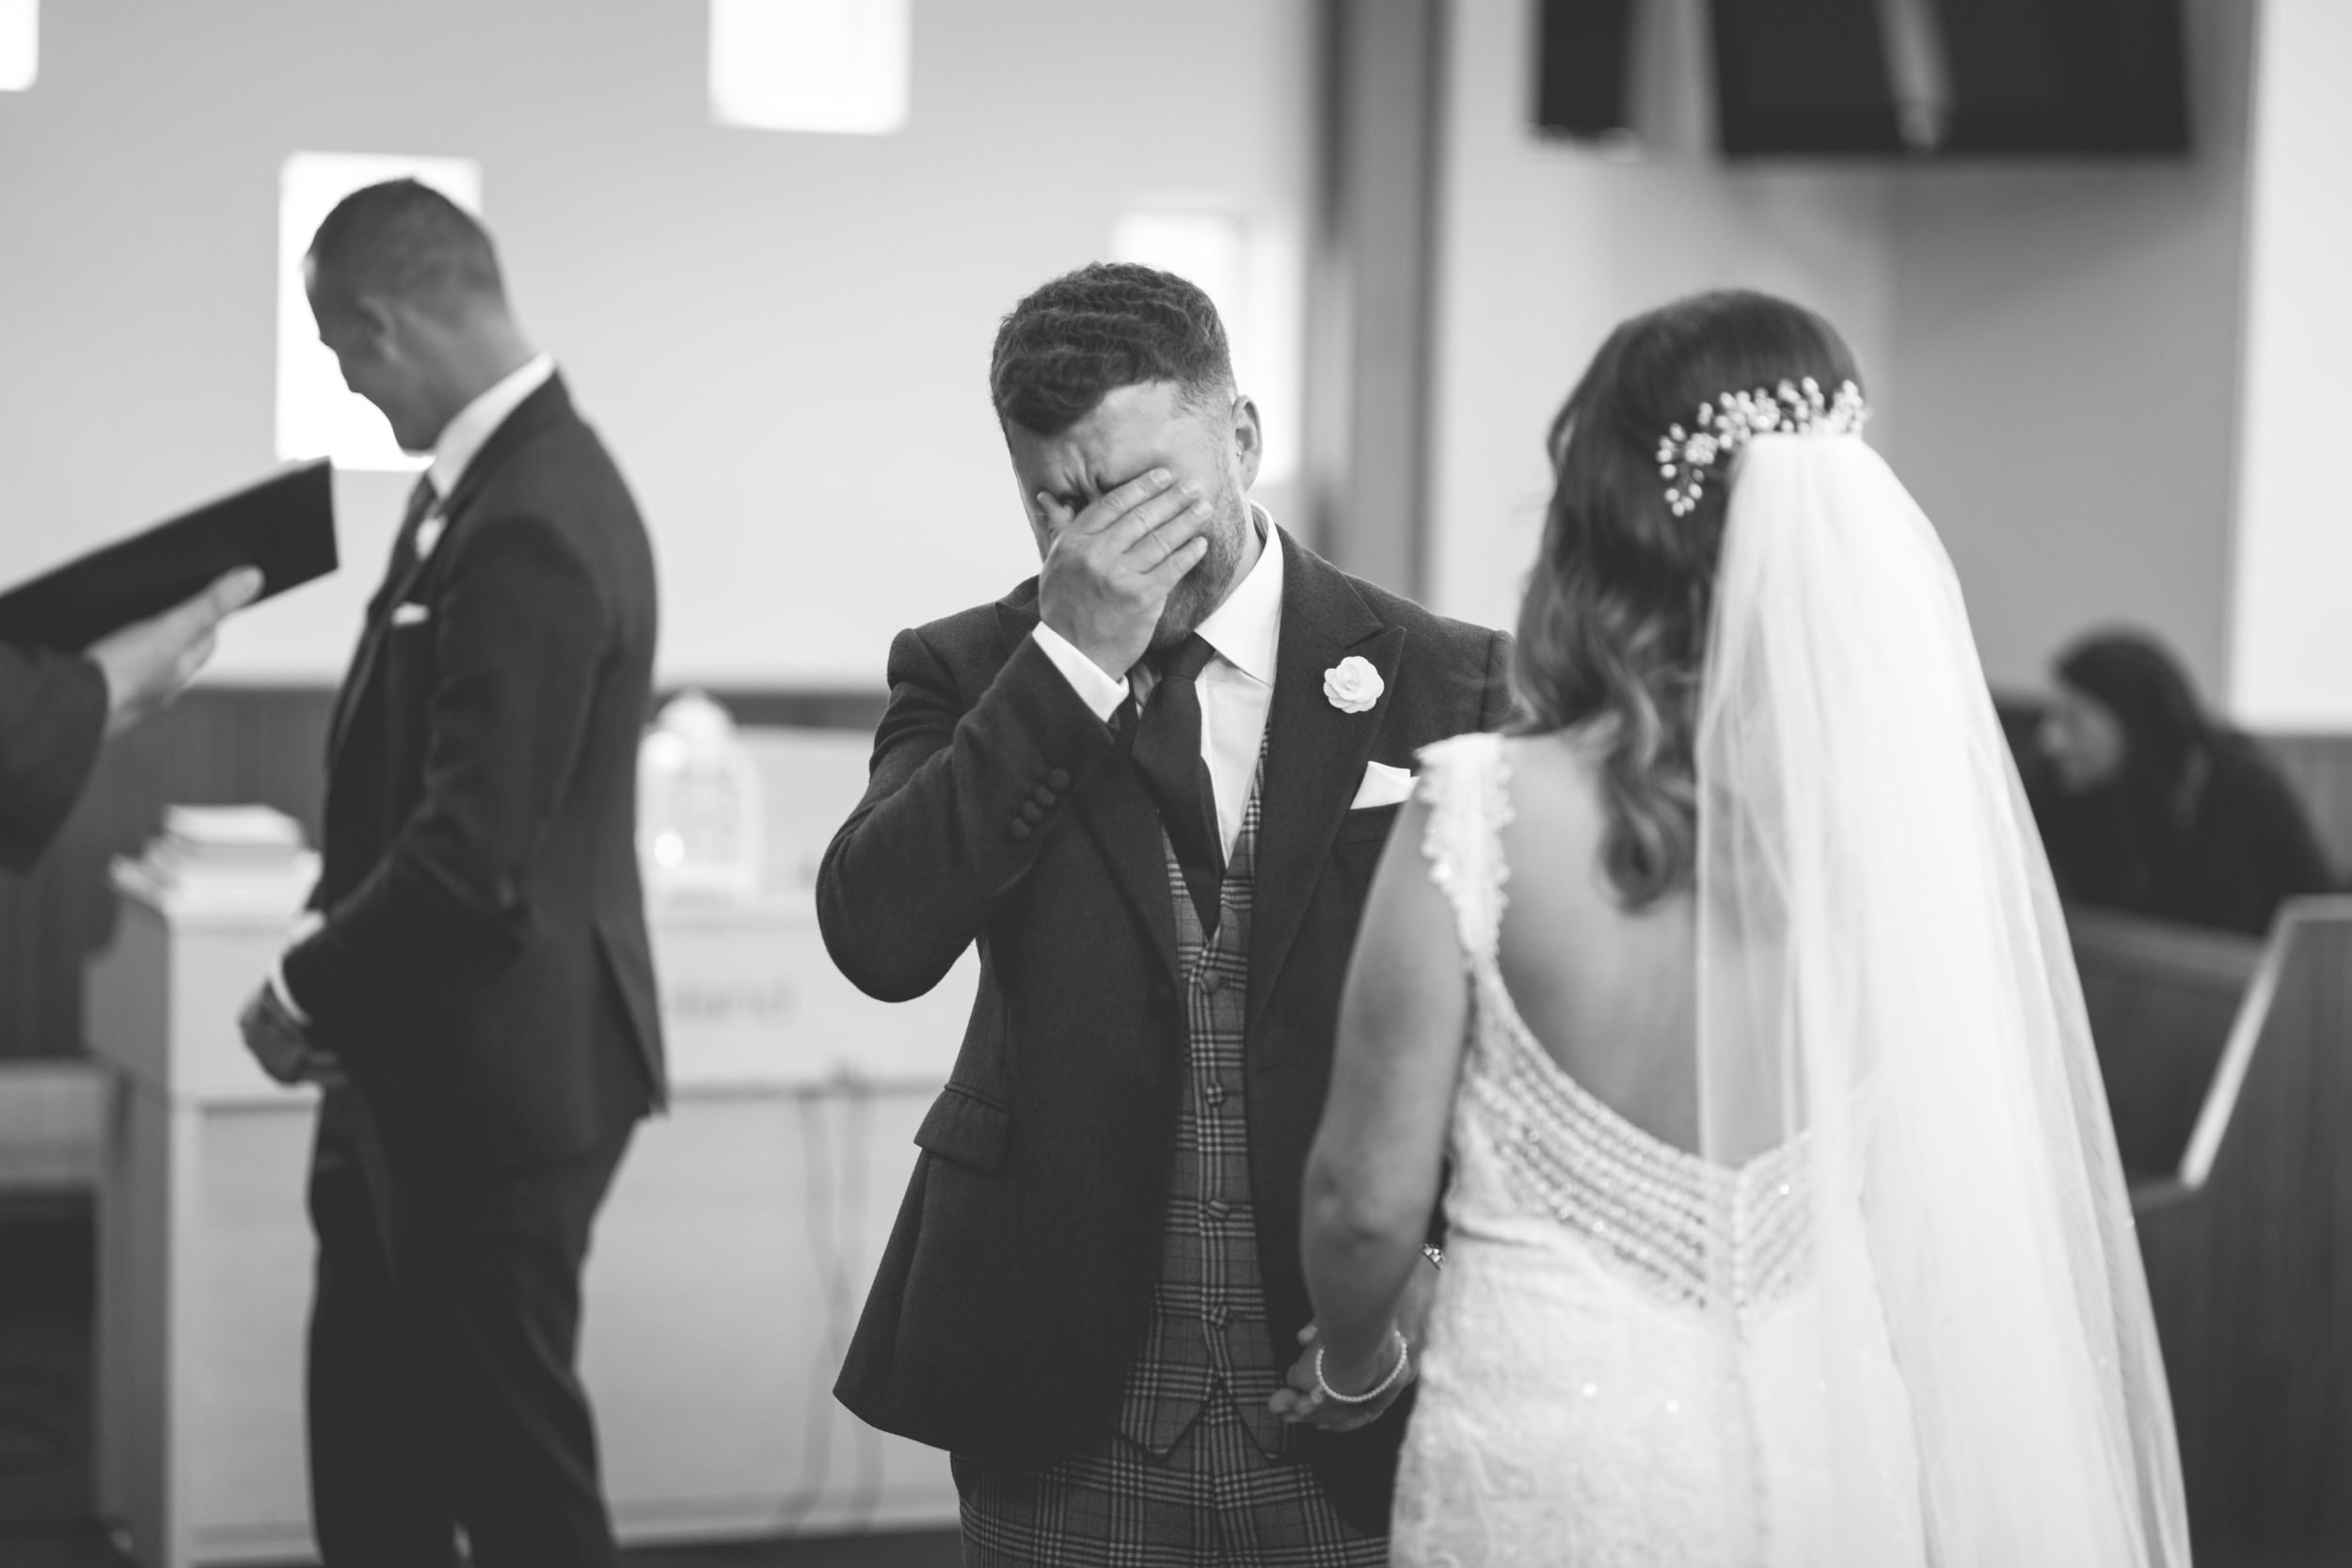 Brian McEwan | Northern Ireland Wedding Photographer | Rebecca & Michael | Ceremony-61.jpg